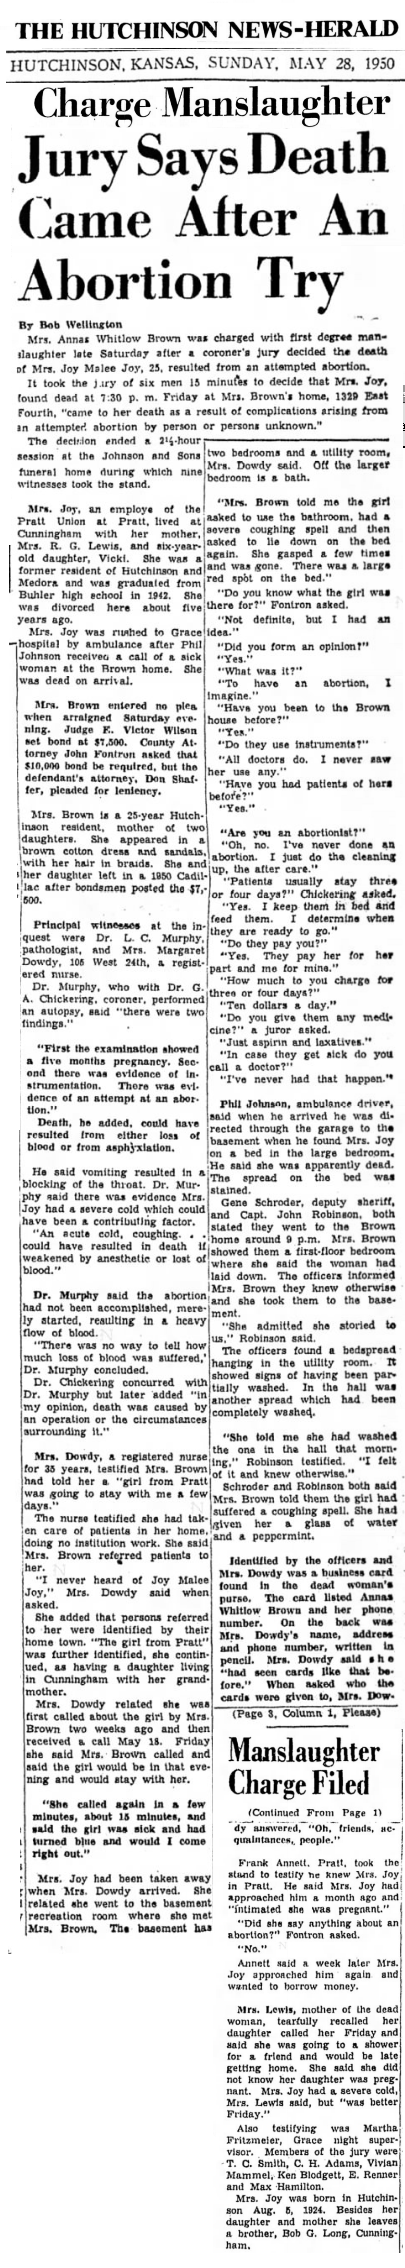 JoyJoyHutchinsonKSNews28May1950BannerHeadline.png